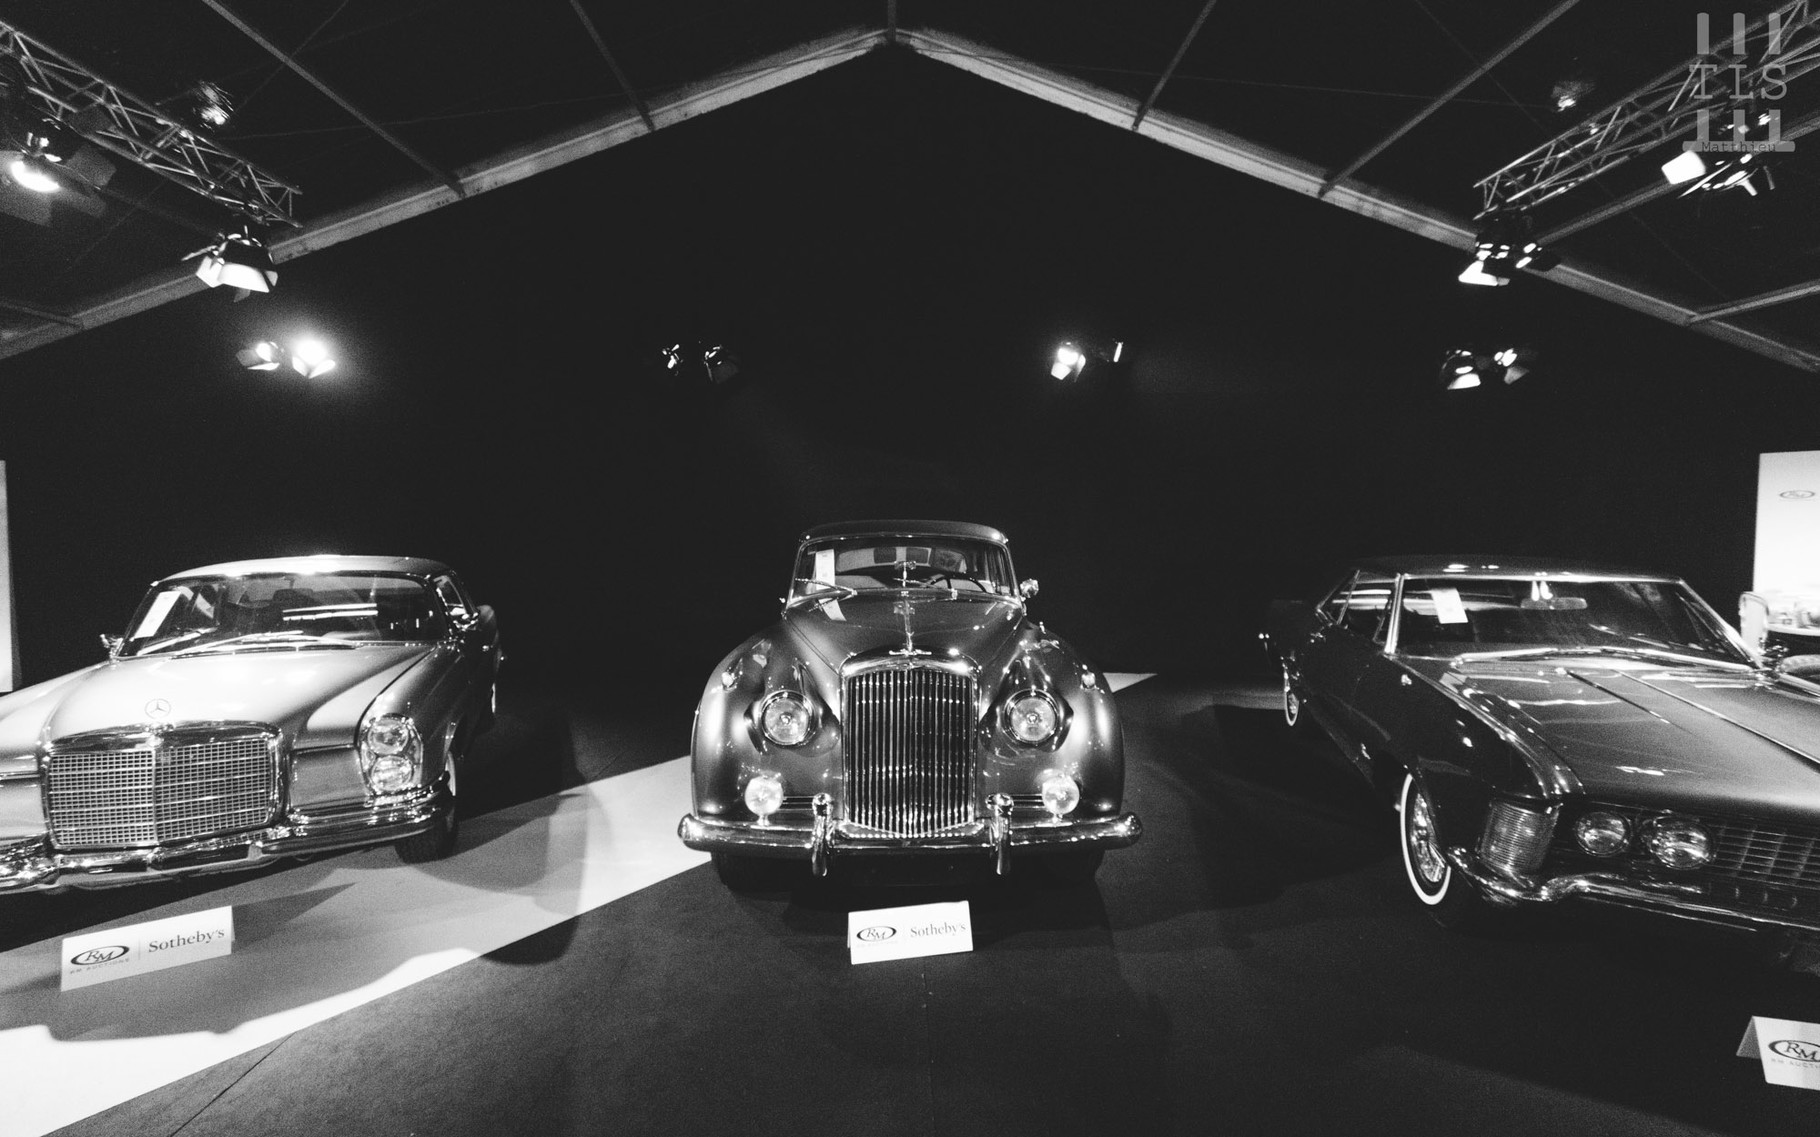 Bentley S1 Saloon, vendue à 58 800 euros.